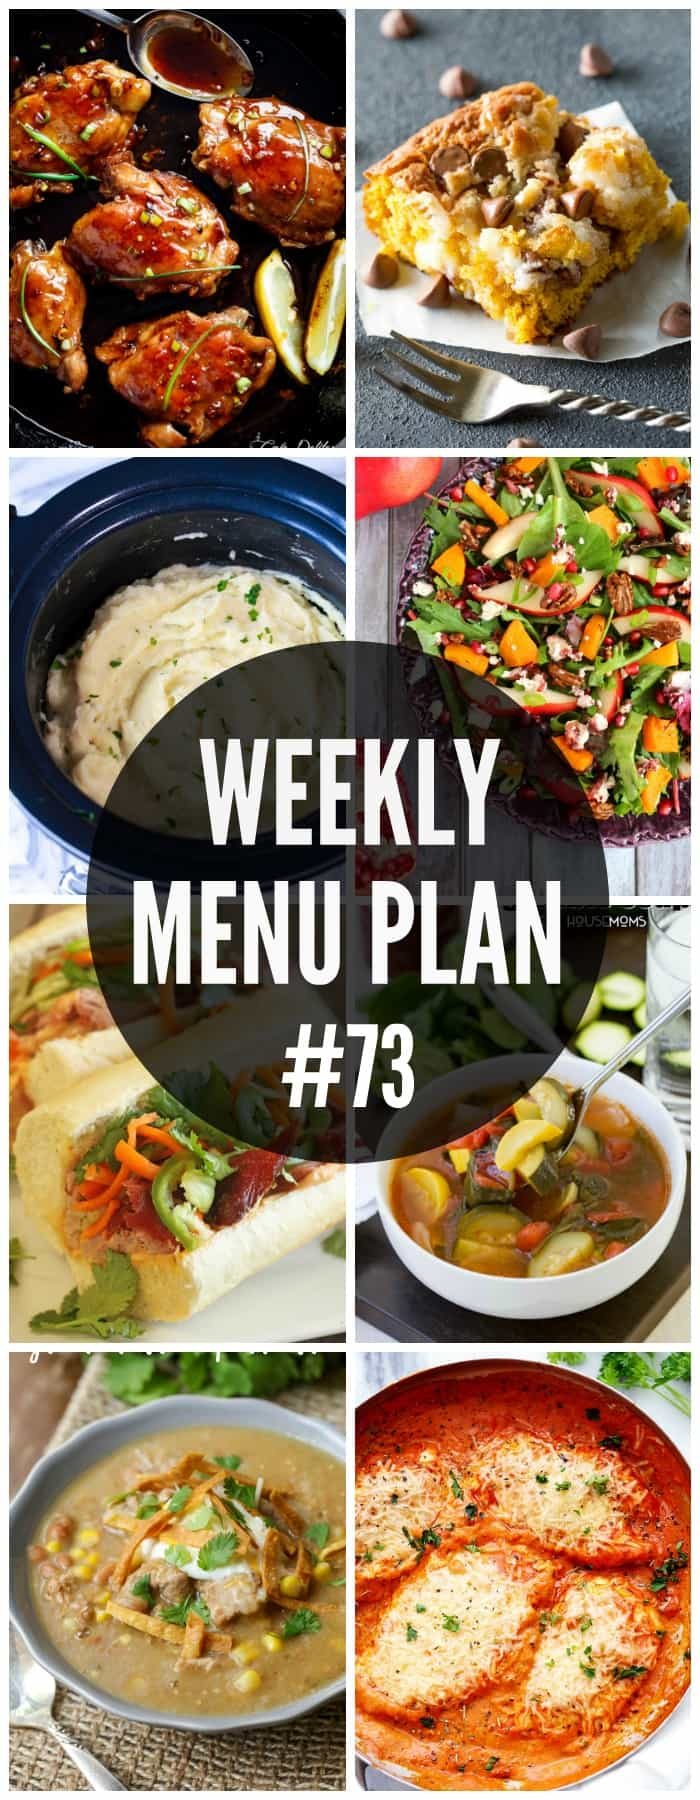 weekly-menu-plan-73-hero